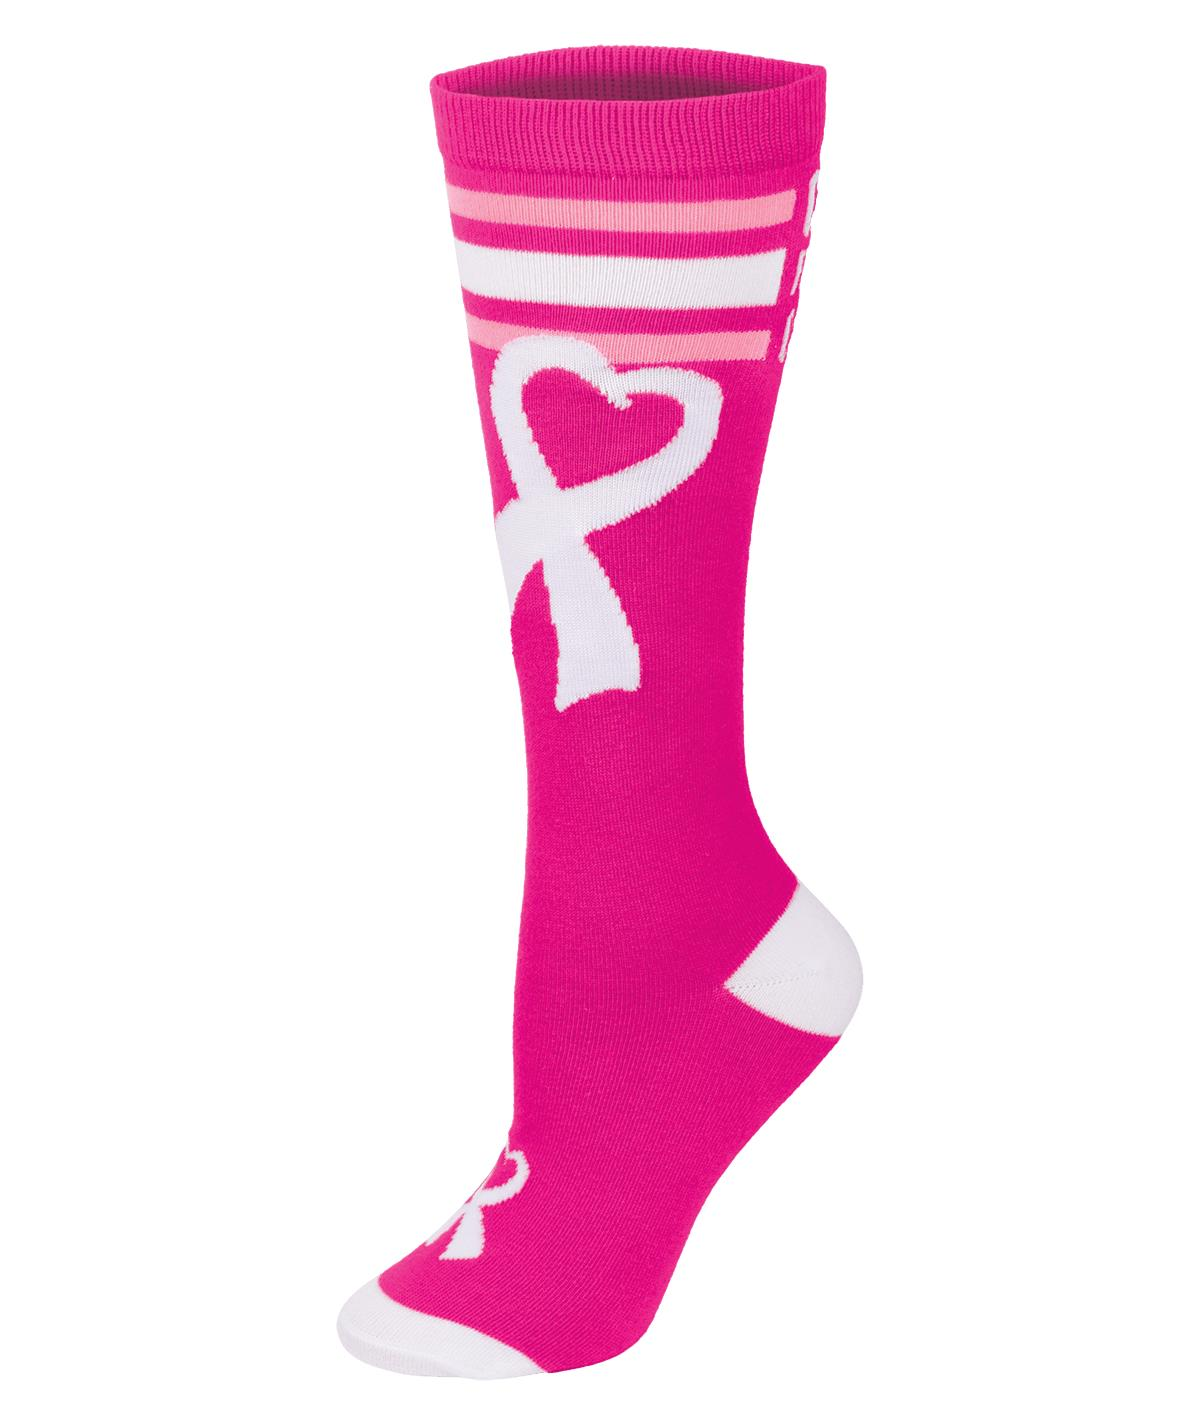 8f372ef74aa96 Chasse Cheer for the Cause Ribbon Knee High Sock